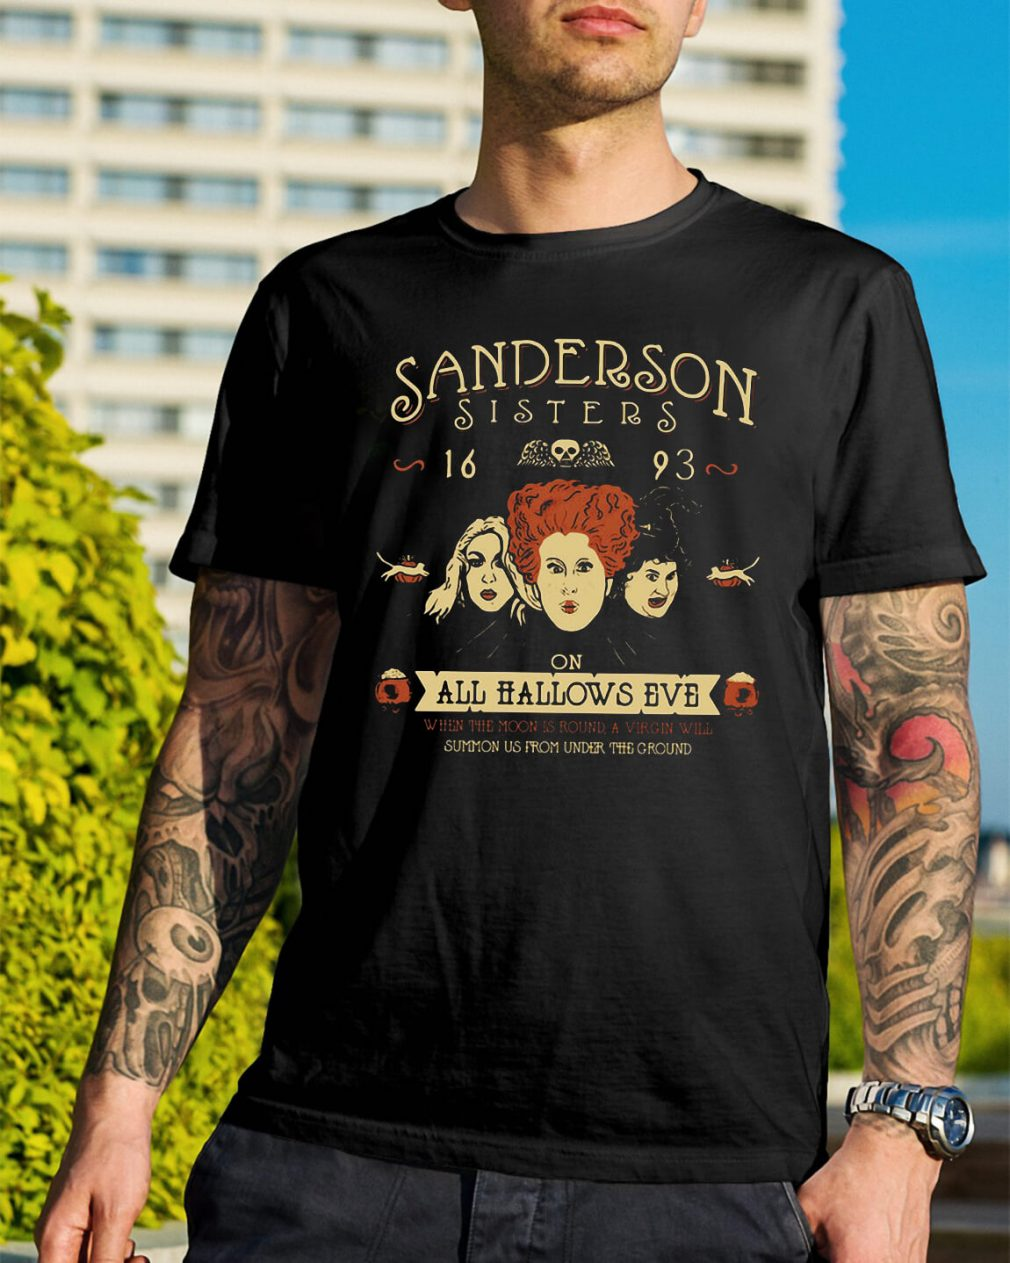 Sanderson Sisters 16 93 on all Hallows Eve shirt